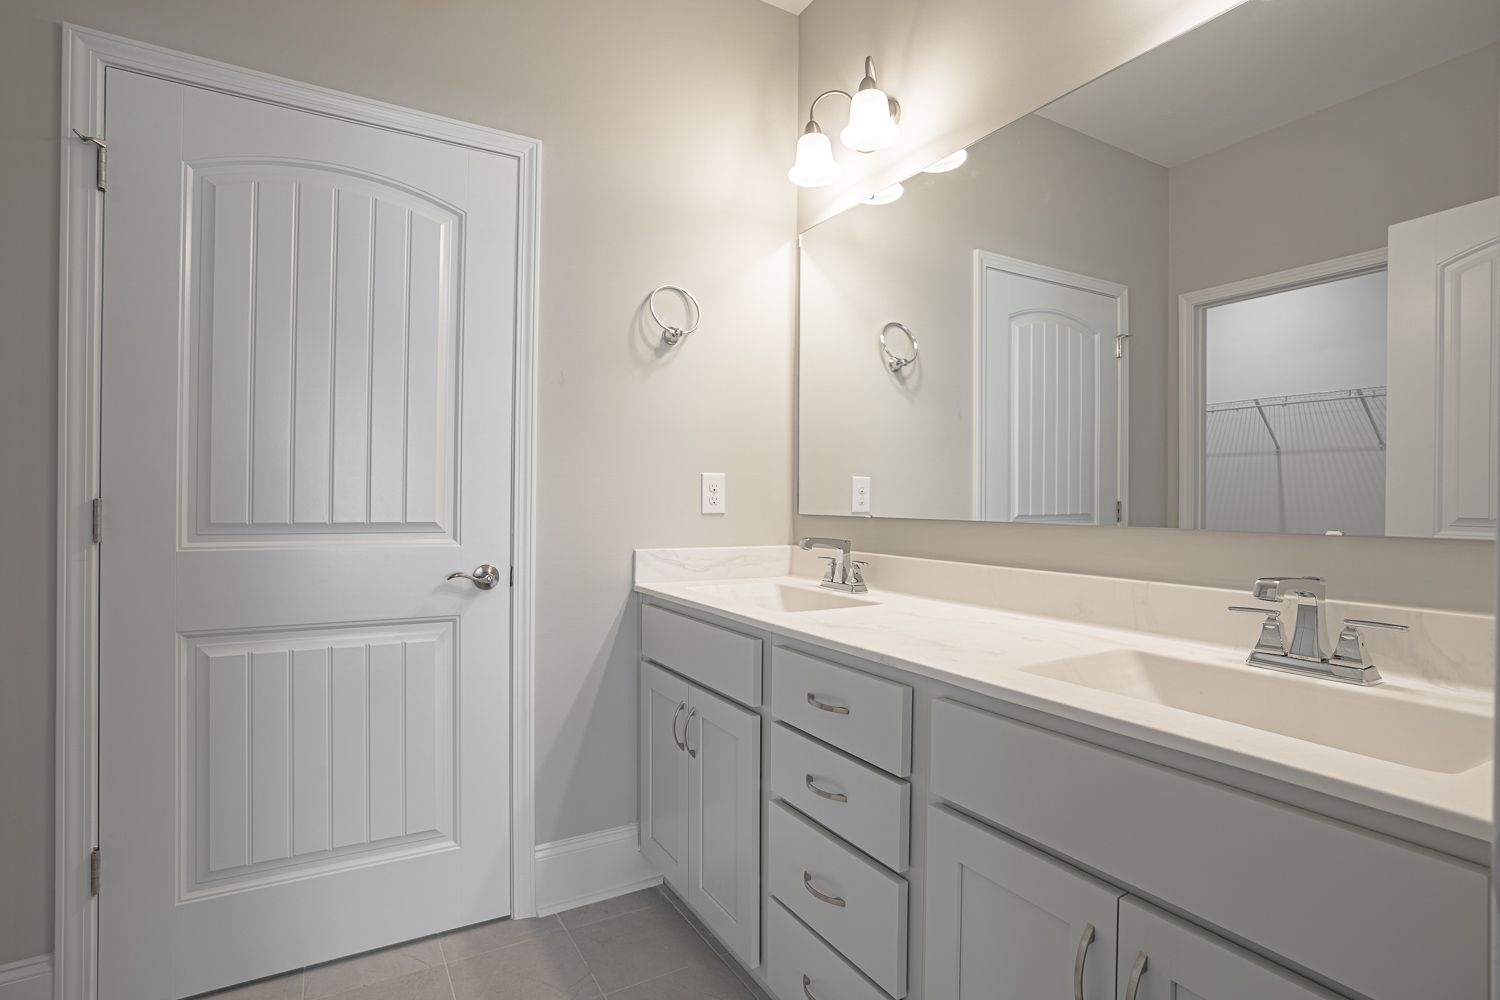 Bathroom featured in the Palazzo Craftsman By McKee Homes in Wilmington, NC